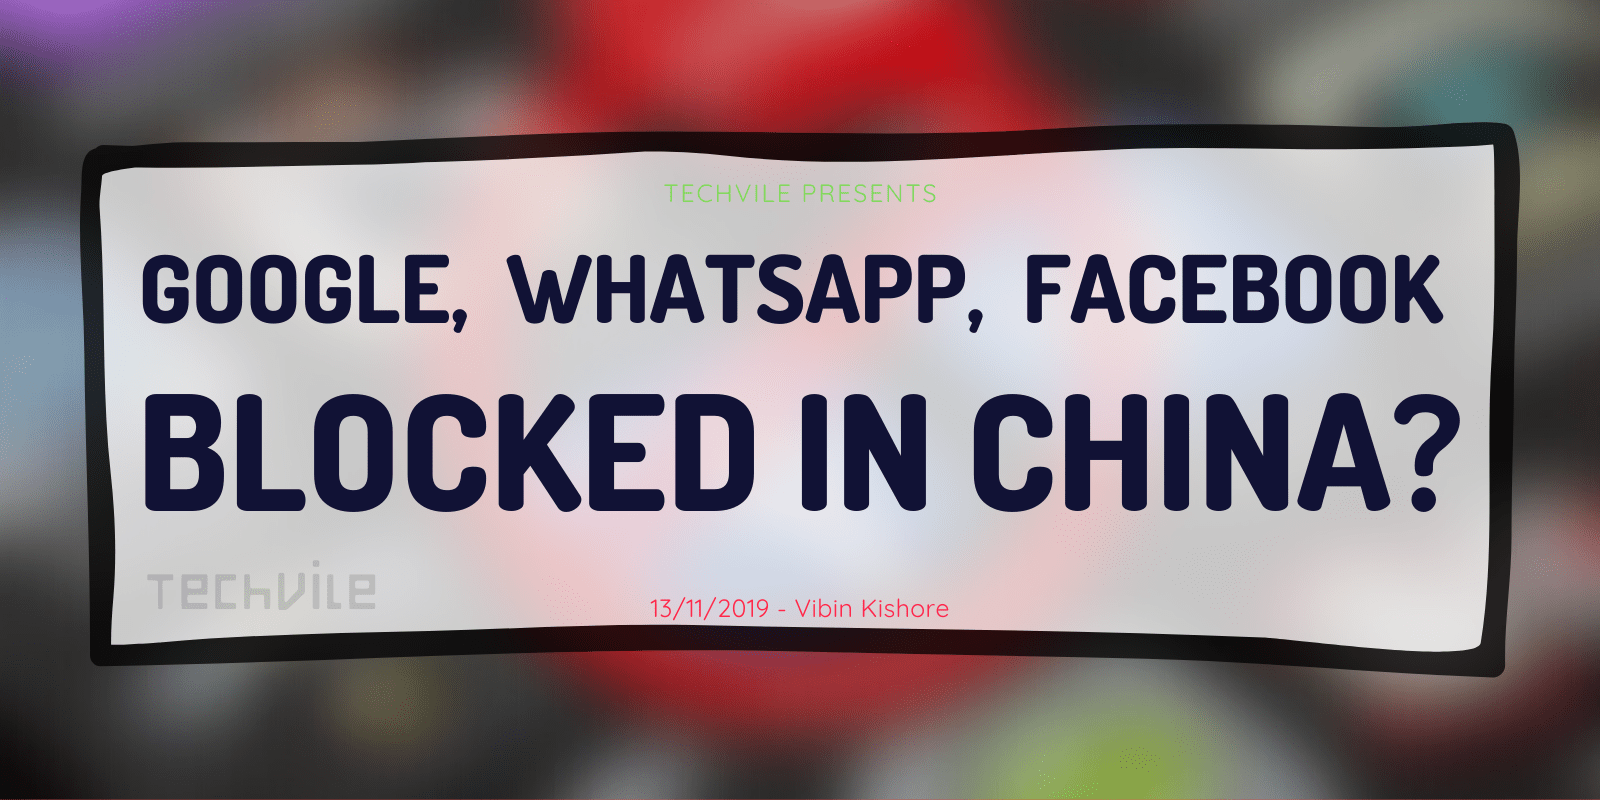 Why Google, Facebook, and Whatsapp Blocked in China?